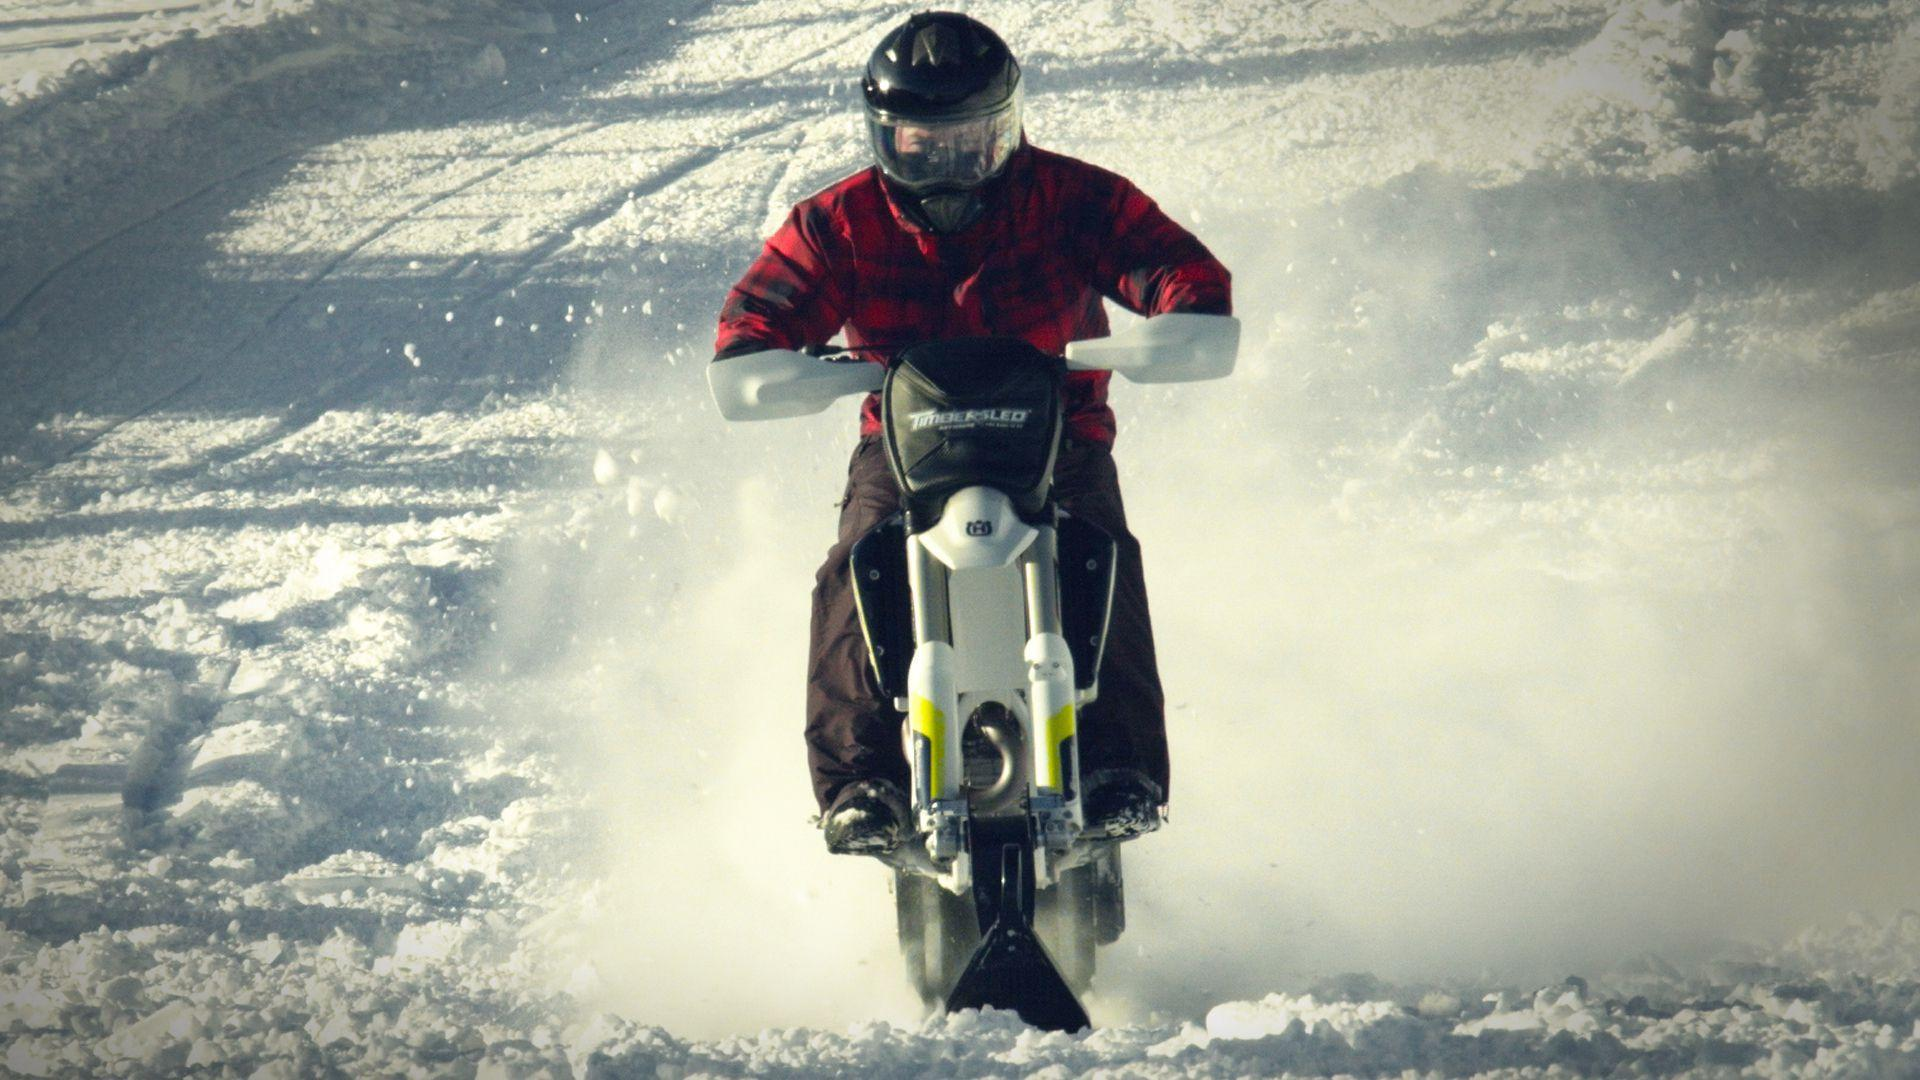 This converted dirt bike is the ultimate winter adventure toy